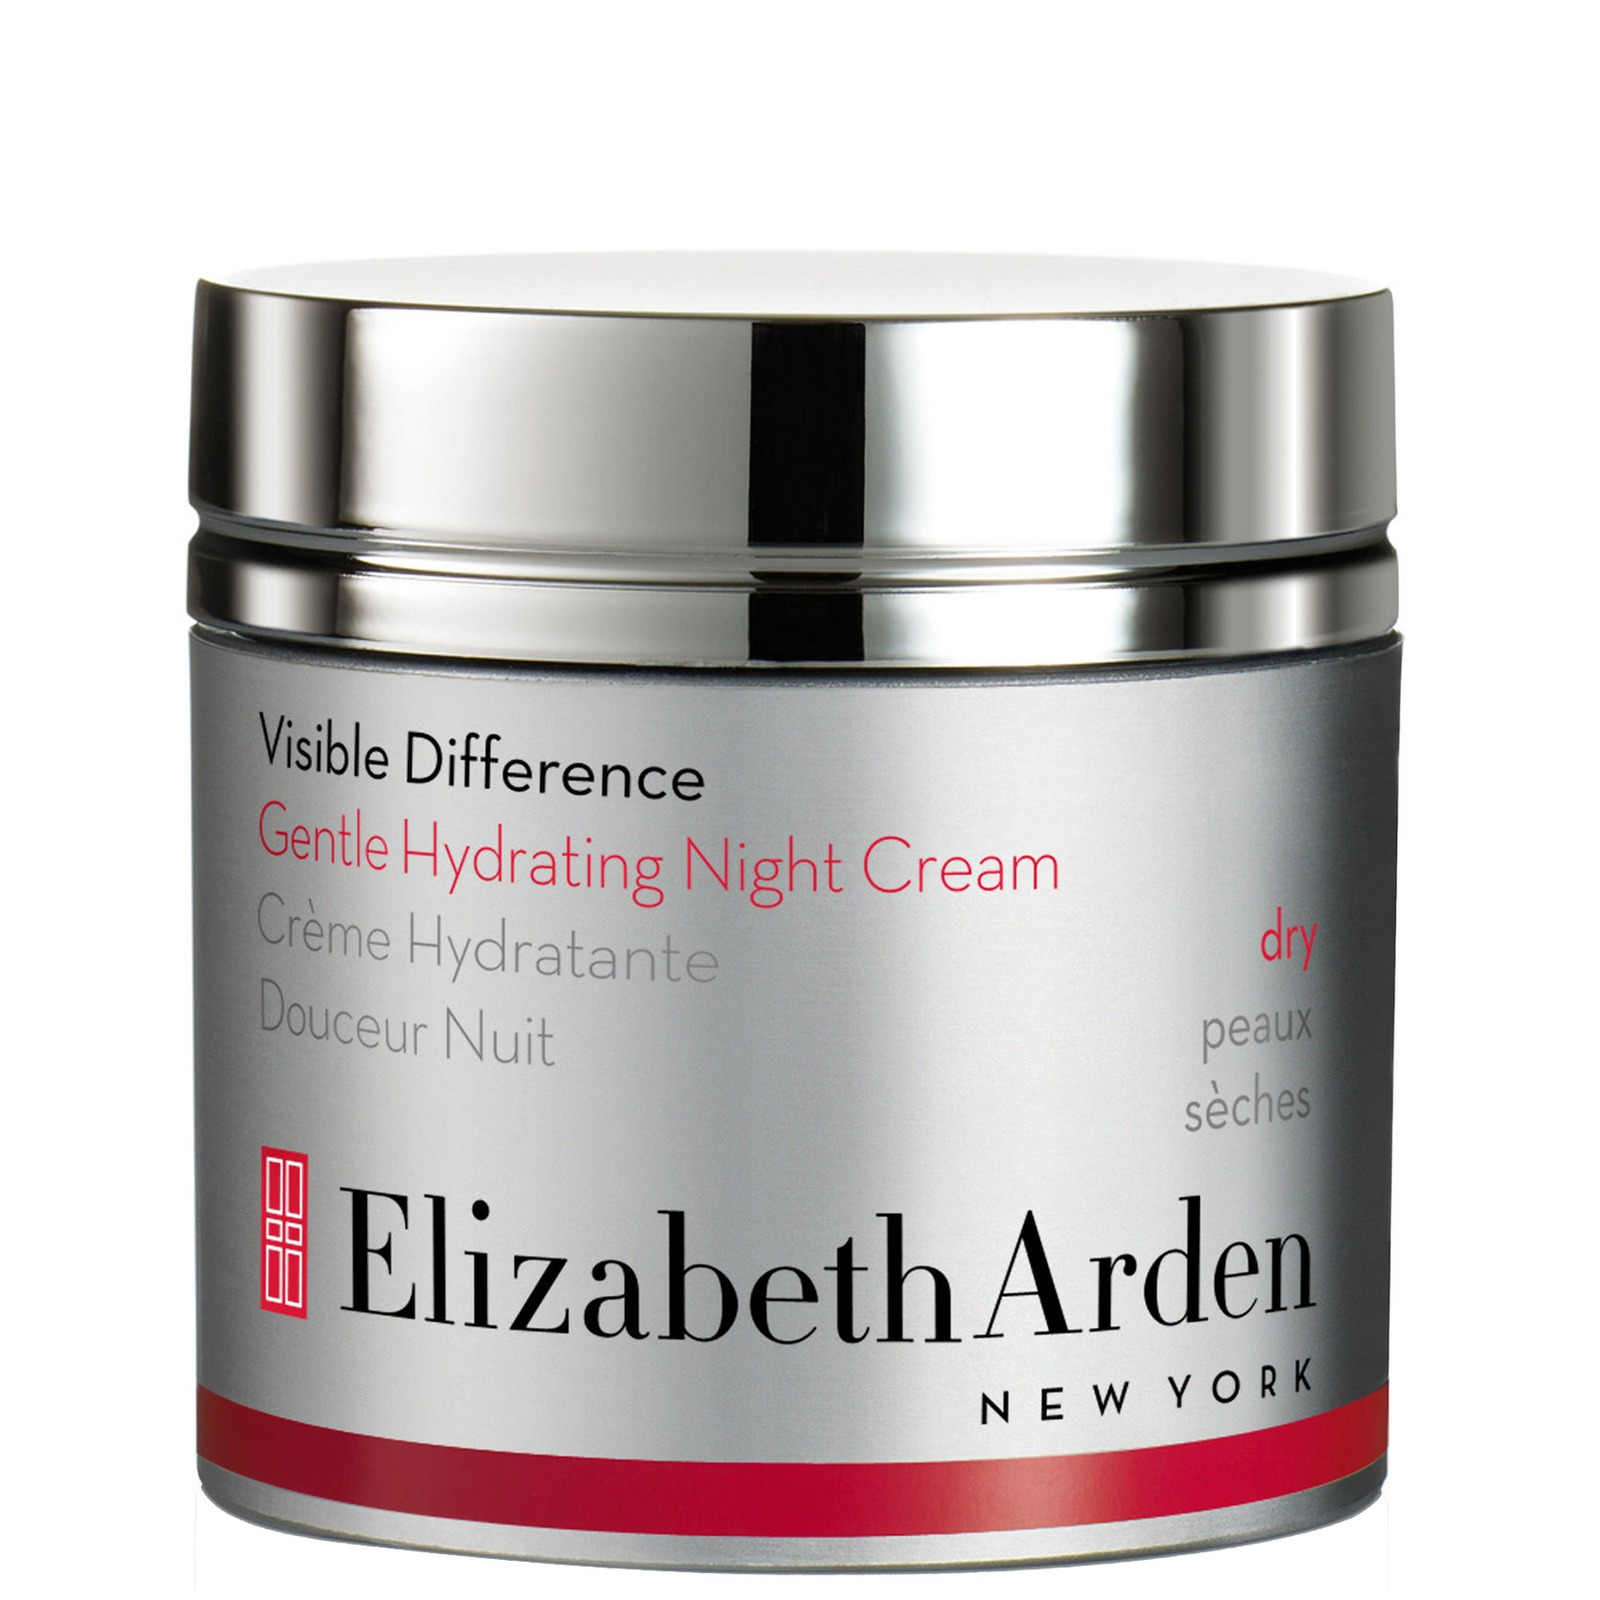 Elizabeth Arden Night Treatments Visible Difference Gentle Hydrating Night Cream For Dry Skin 50ml / 1.7 fl.oz.